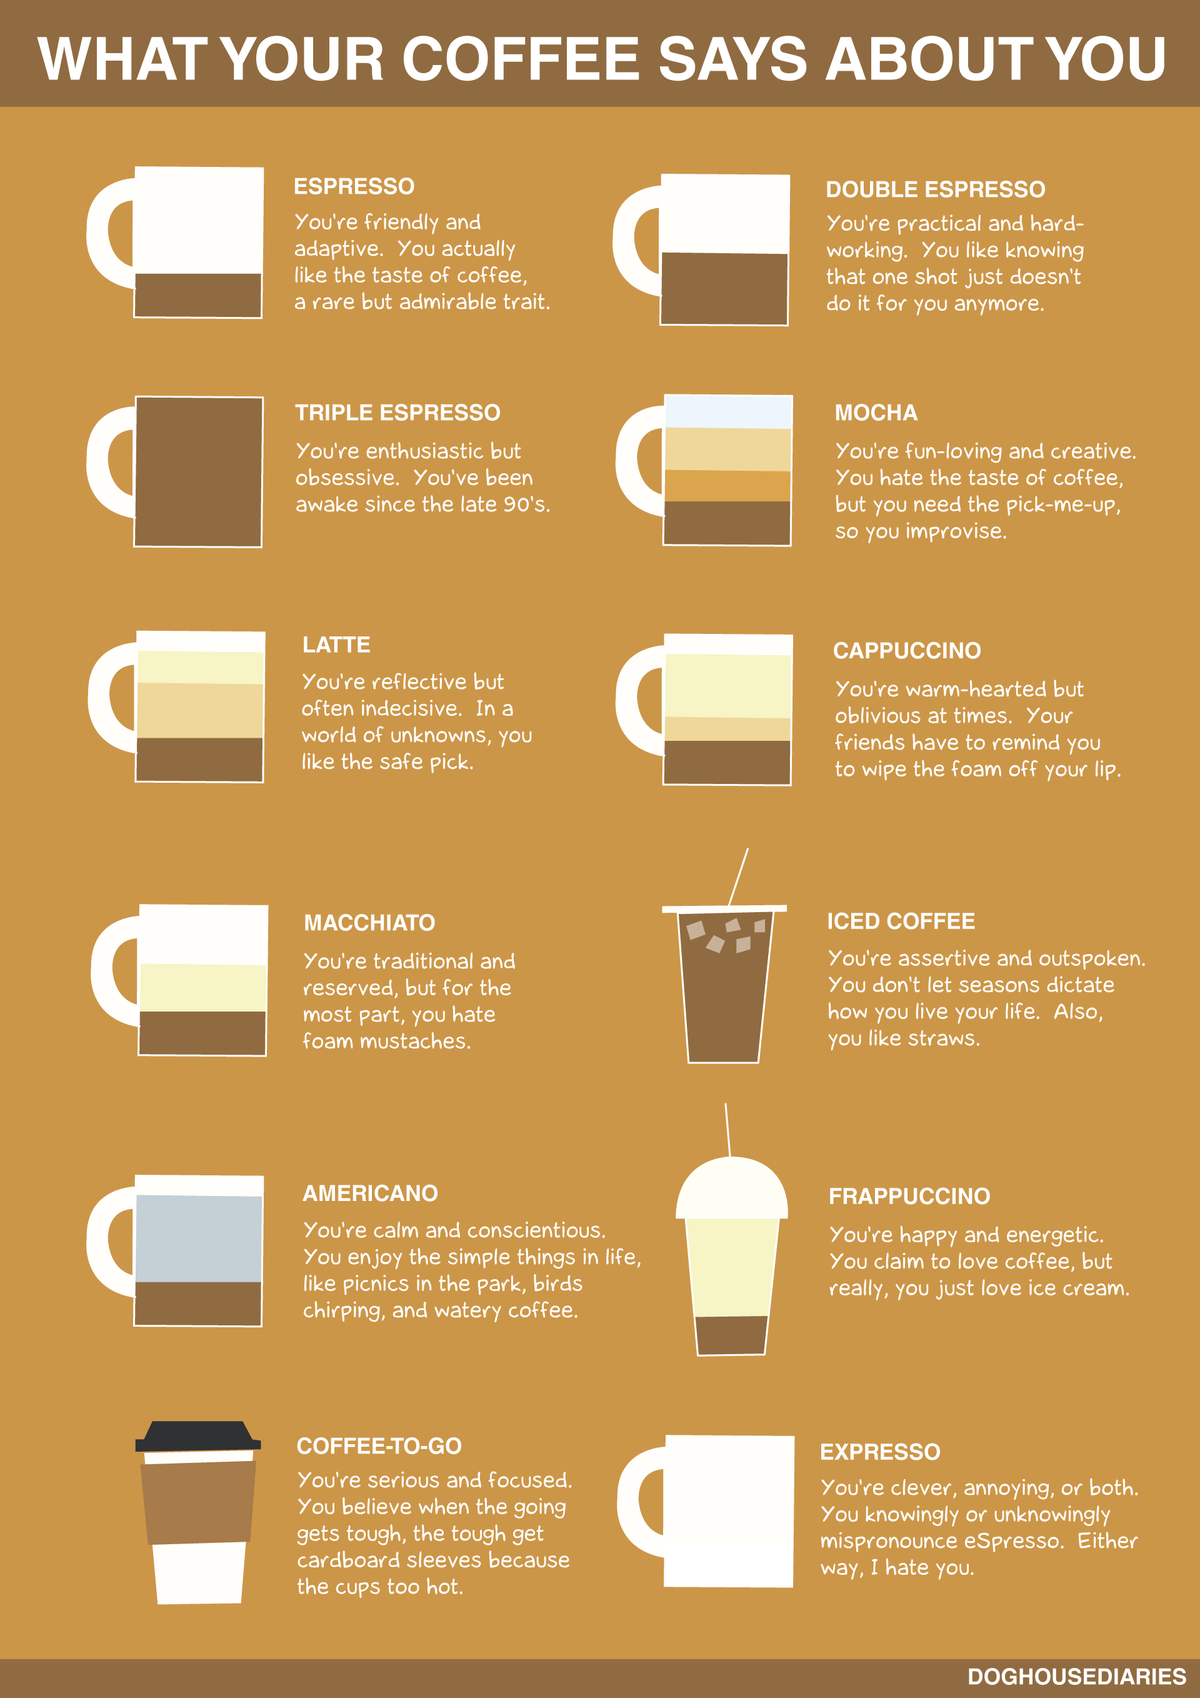 Coffee-Says-About-You